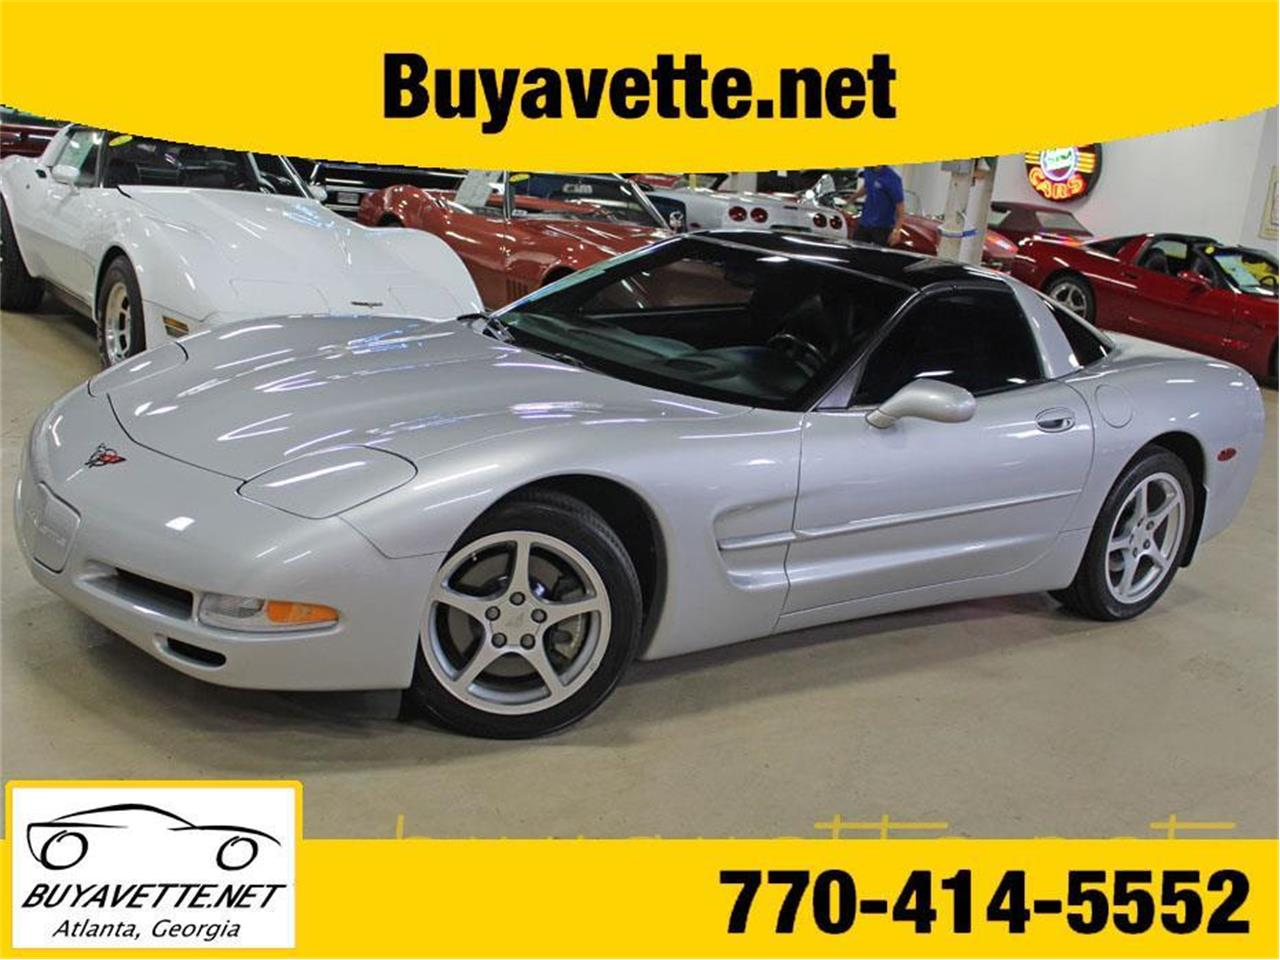 2000 Chevrolet Corvette (CC-1385005) for sale in Atlanta, Georgia